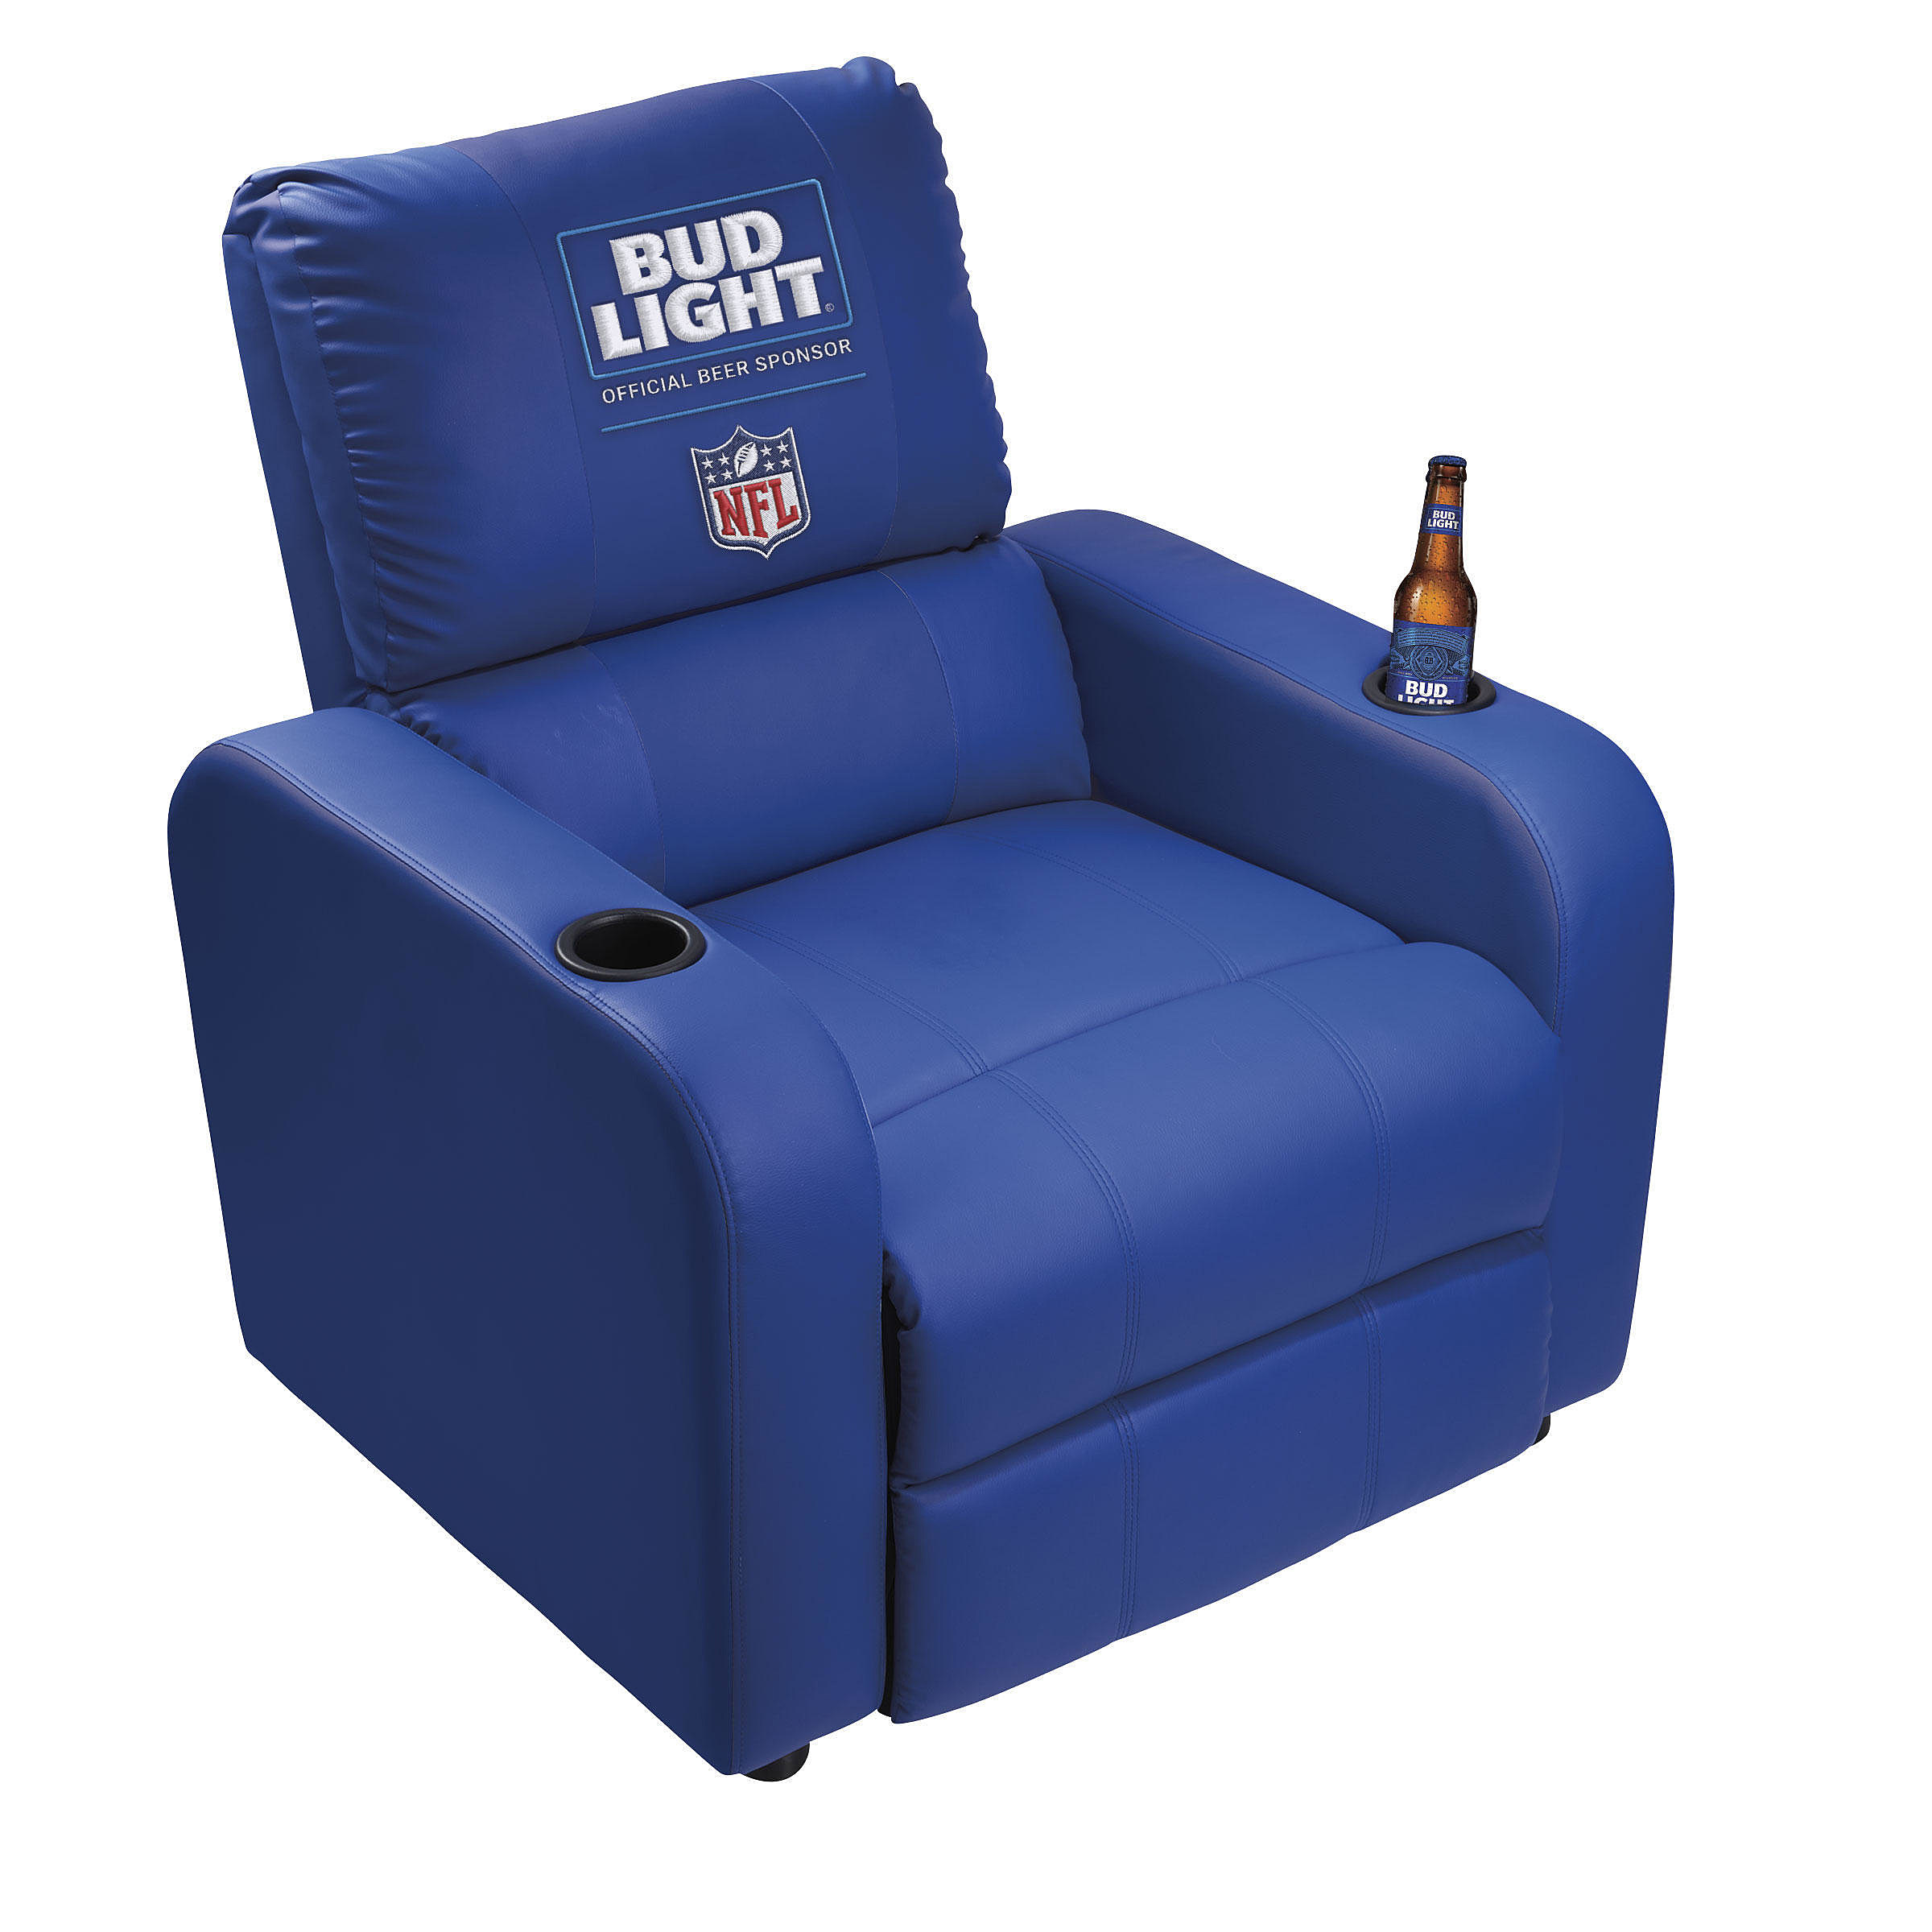 Bud Light Chair Home Design Ideas And Pictures